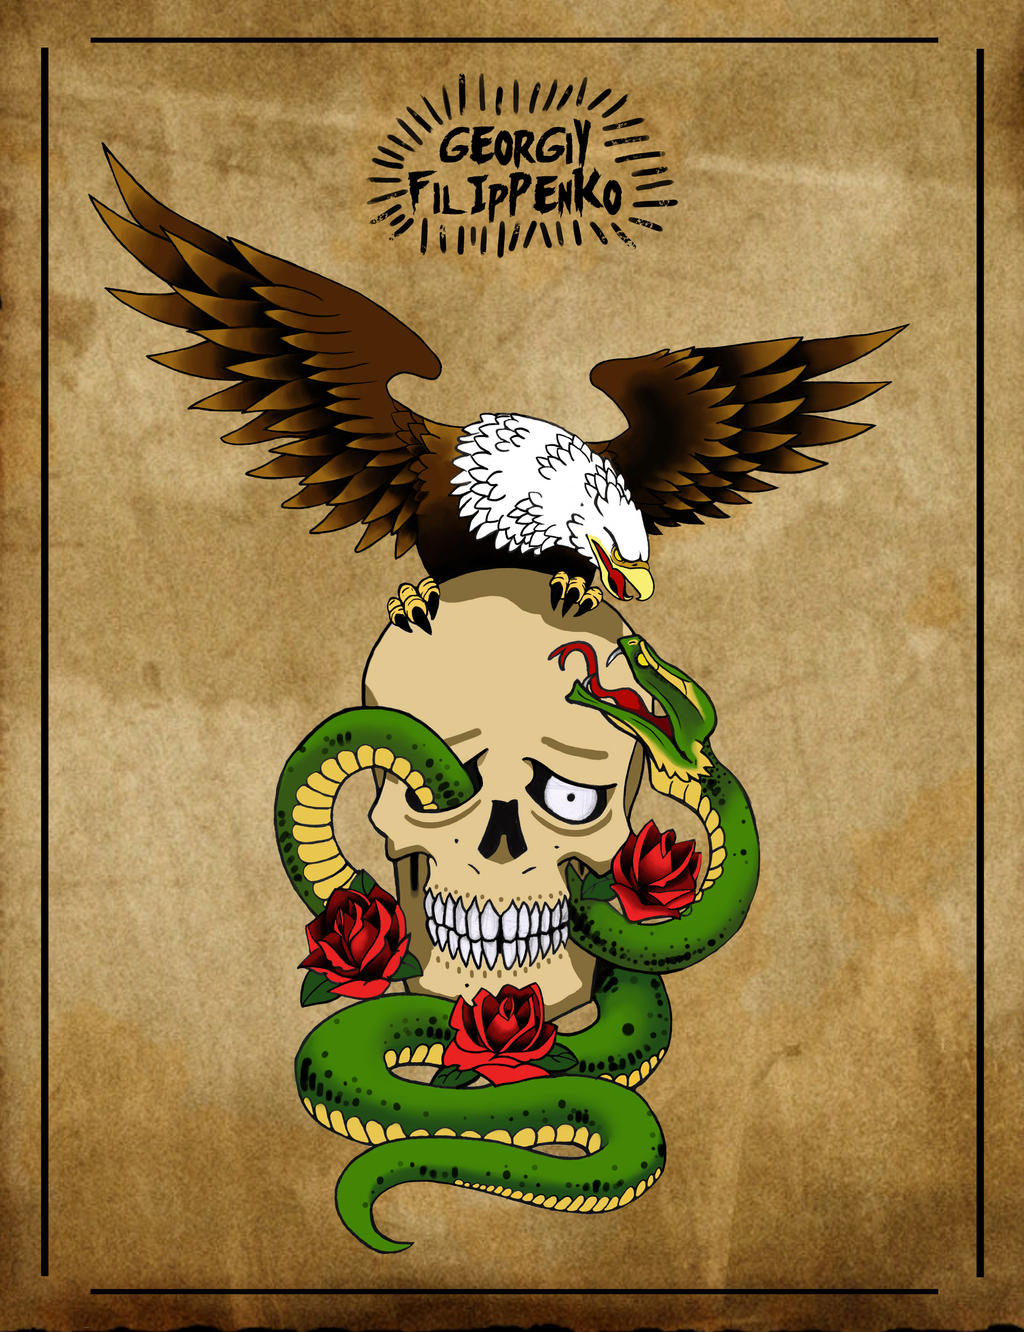 Eagle snake and skull by vomitman on deviantart for Skull and eagle tattoo